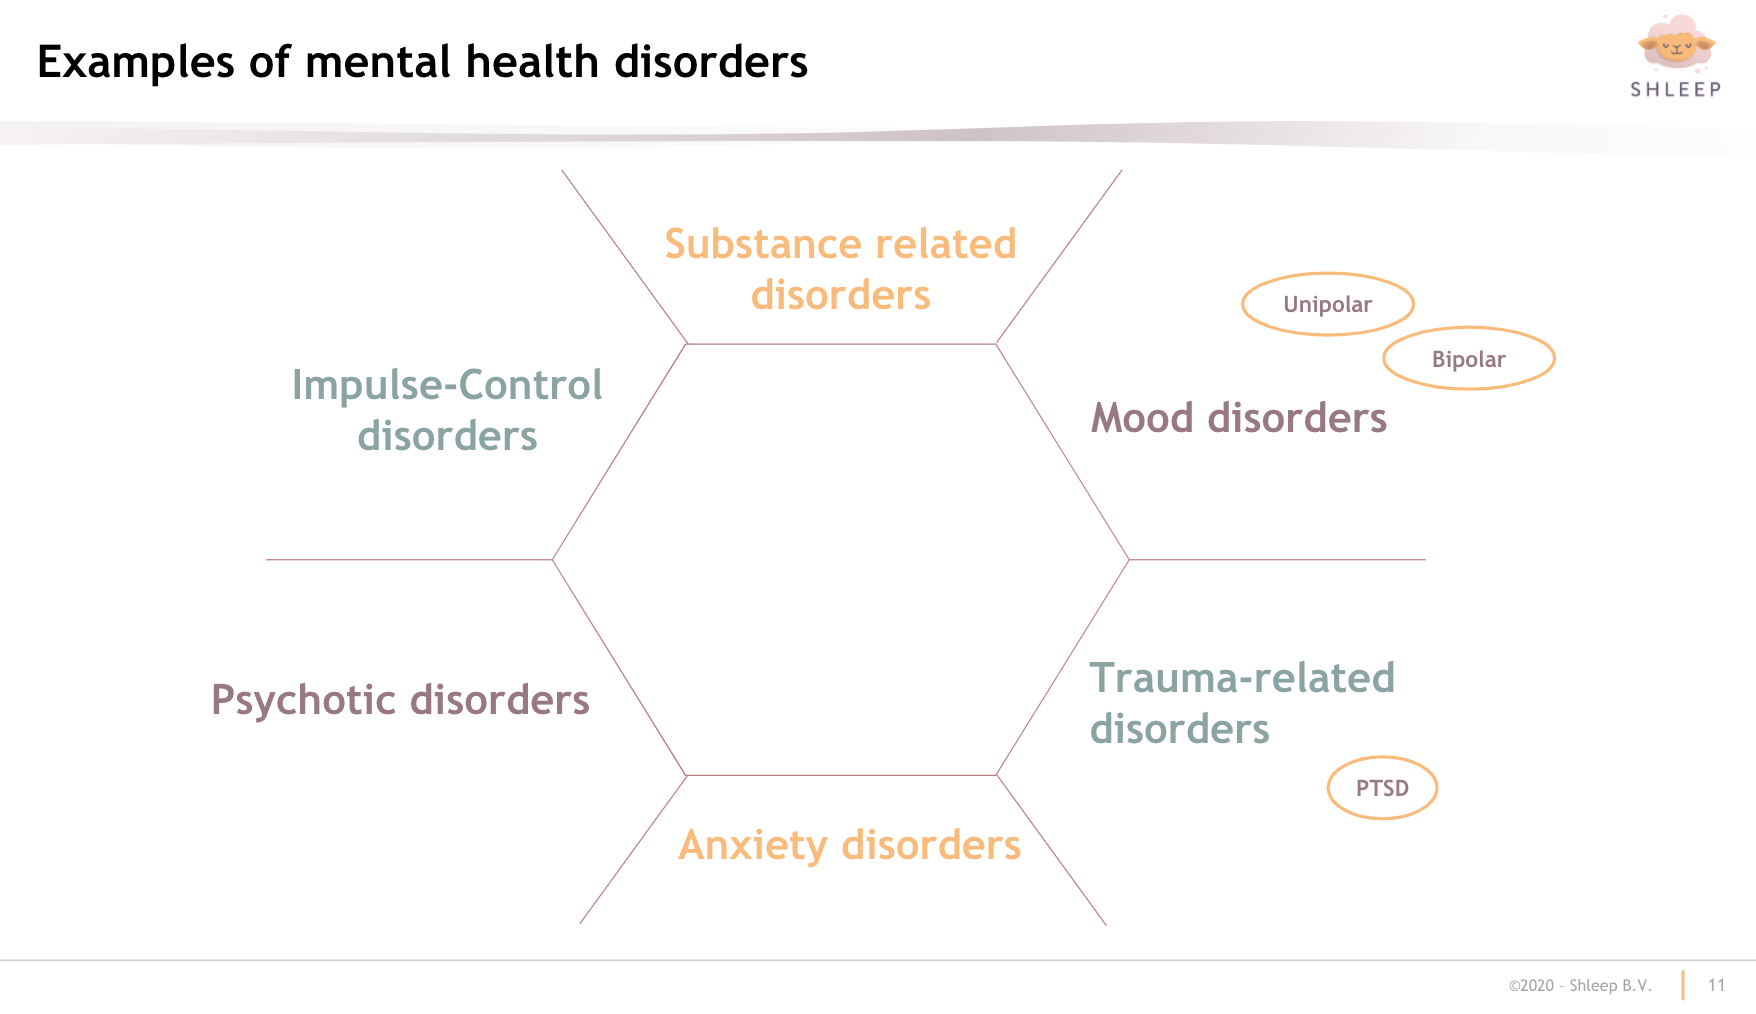 Examples of mental health disorders